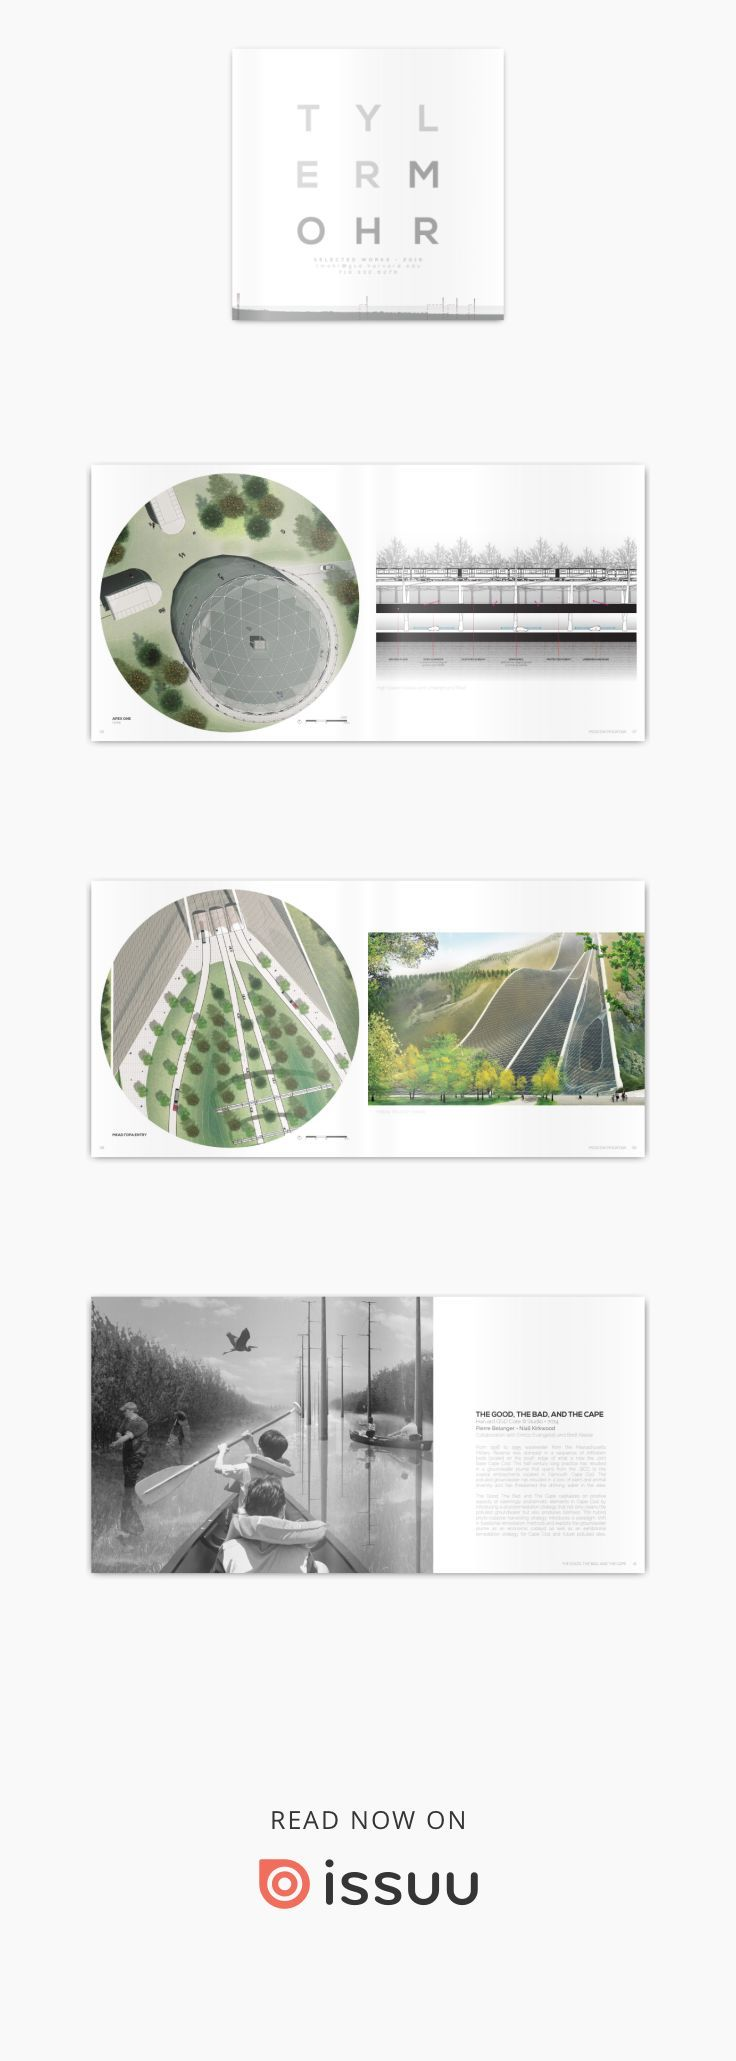 Tyler Mohr 2016 Harvard GSD Landscape Architecture Portfolio - Winter  Compiled works from CSU and Harvard GSD through 2016